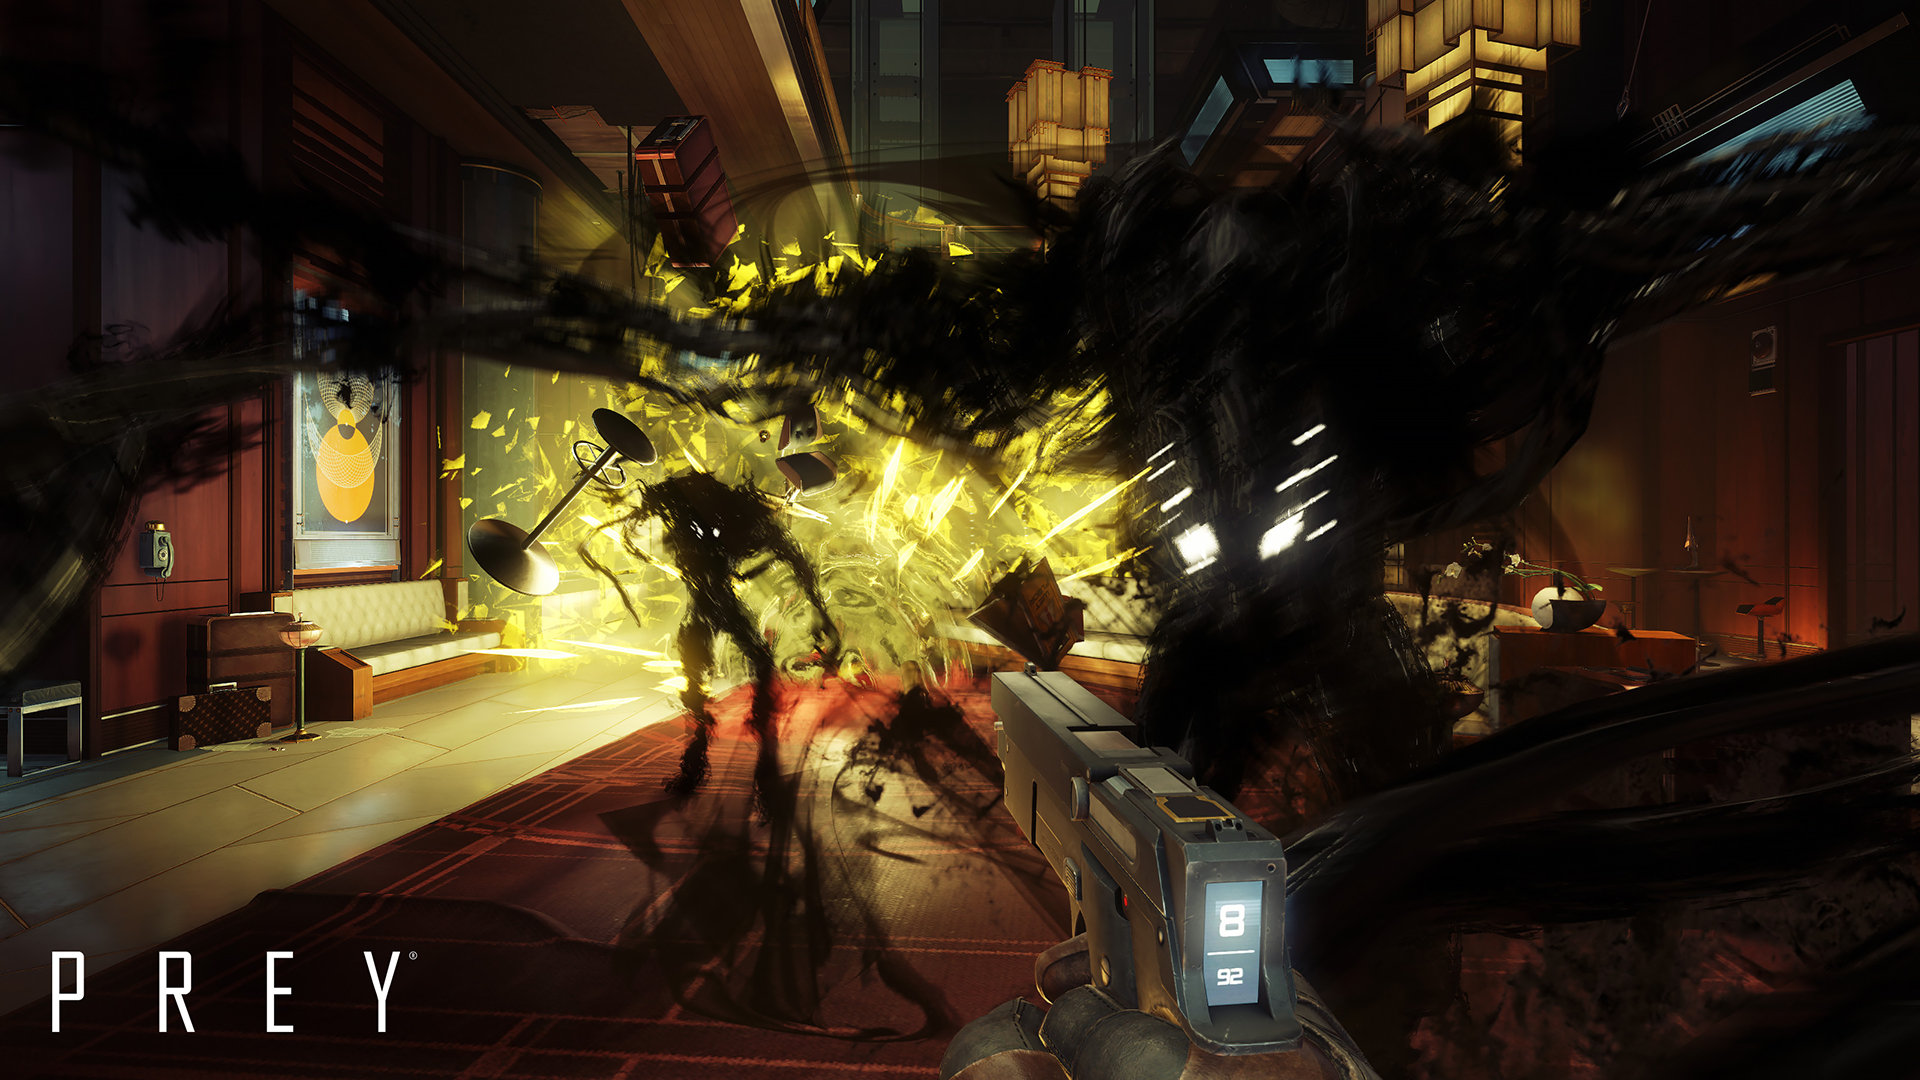 prey-screen-01-ps4-us-04aug16?$MediaCaro